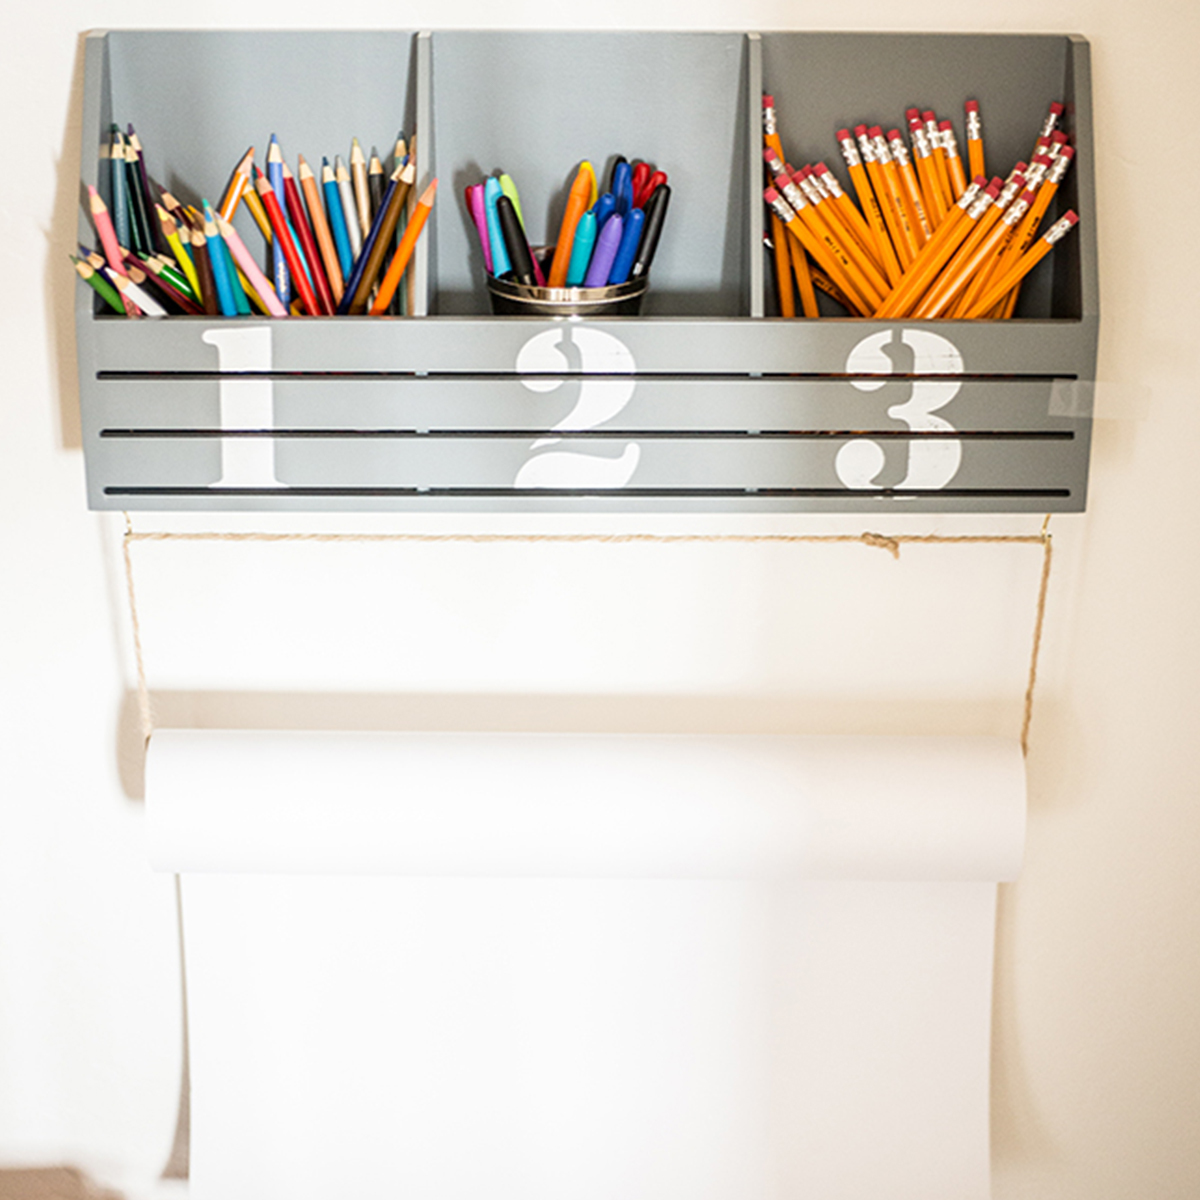 Slatted wall organizer to keep playtime in order. photo